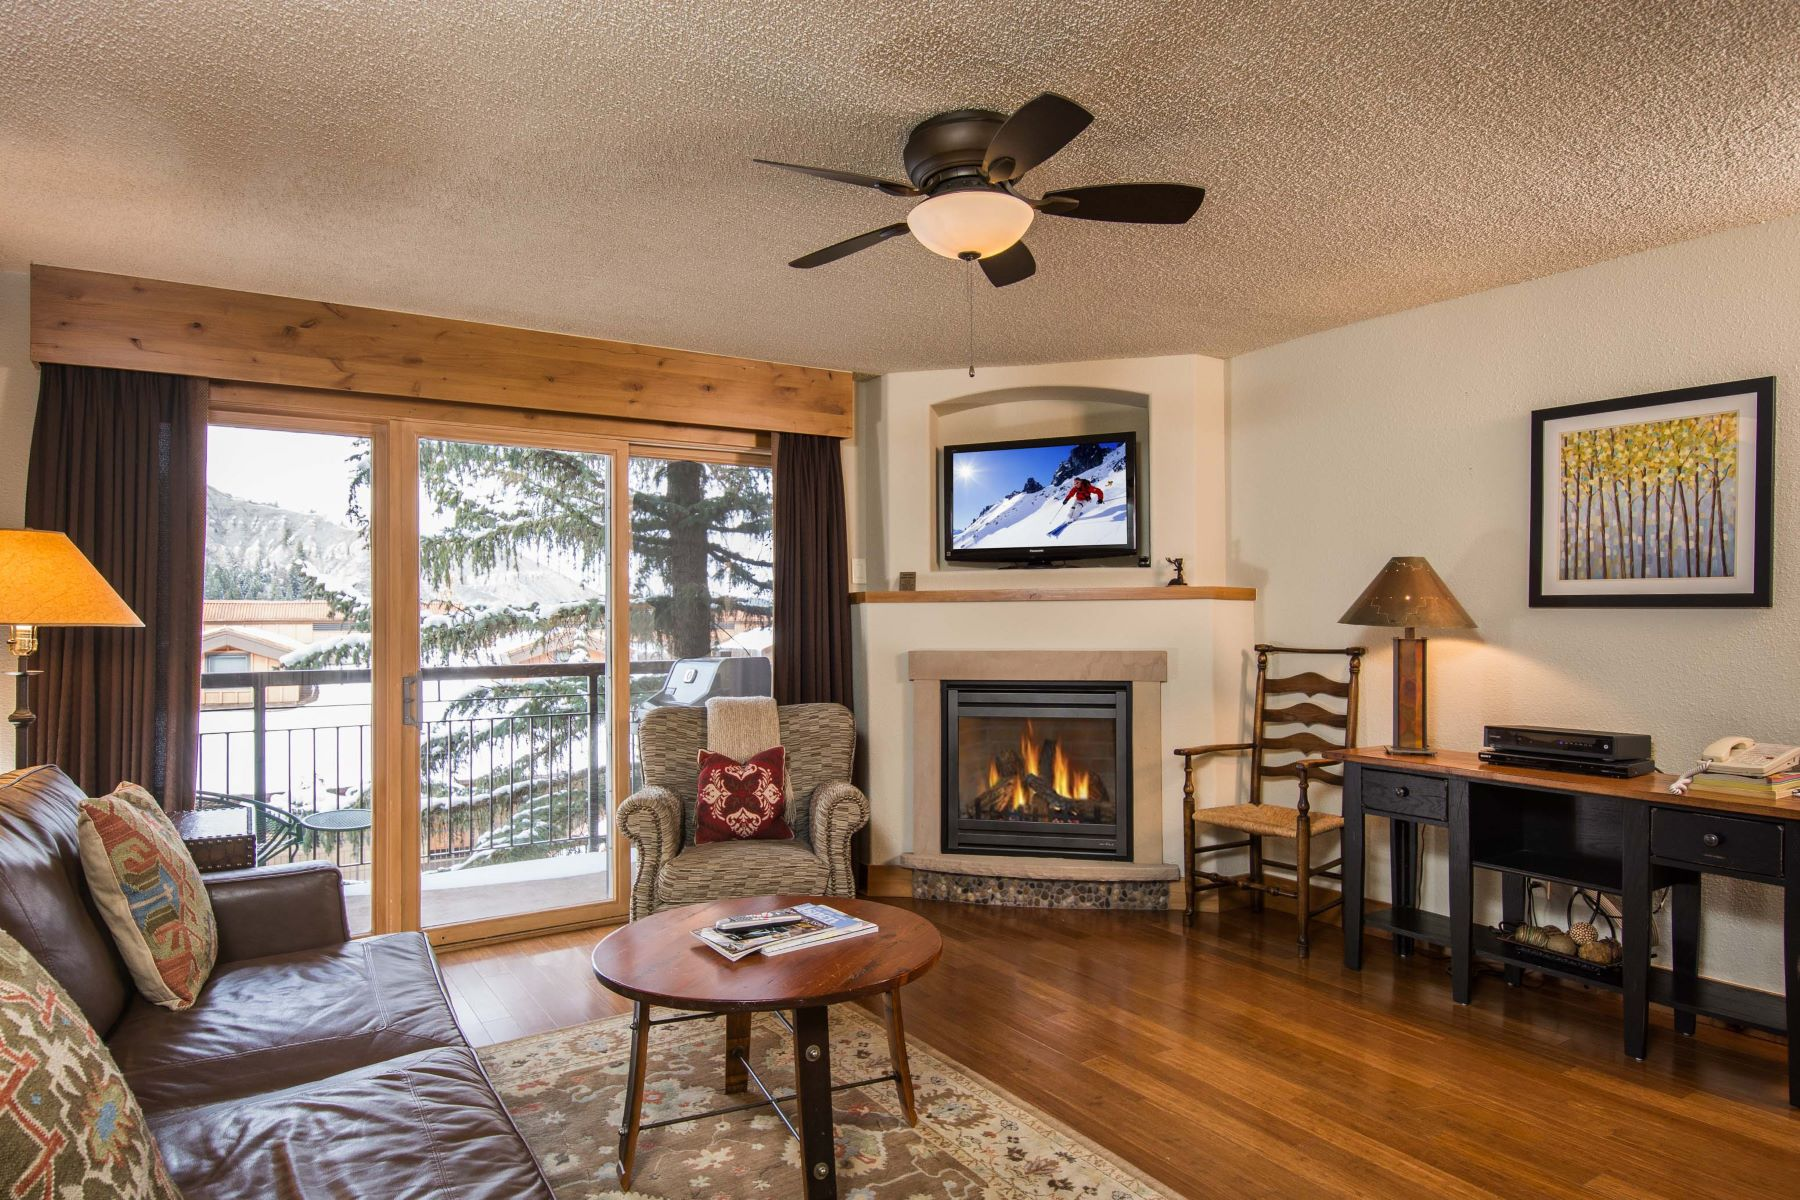 Crestwood 3205 400 Wood Road 3205 Snowmass Village, Colorado 81615 United States